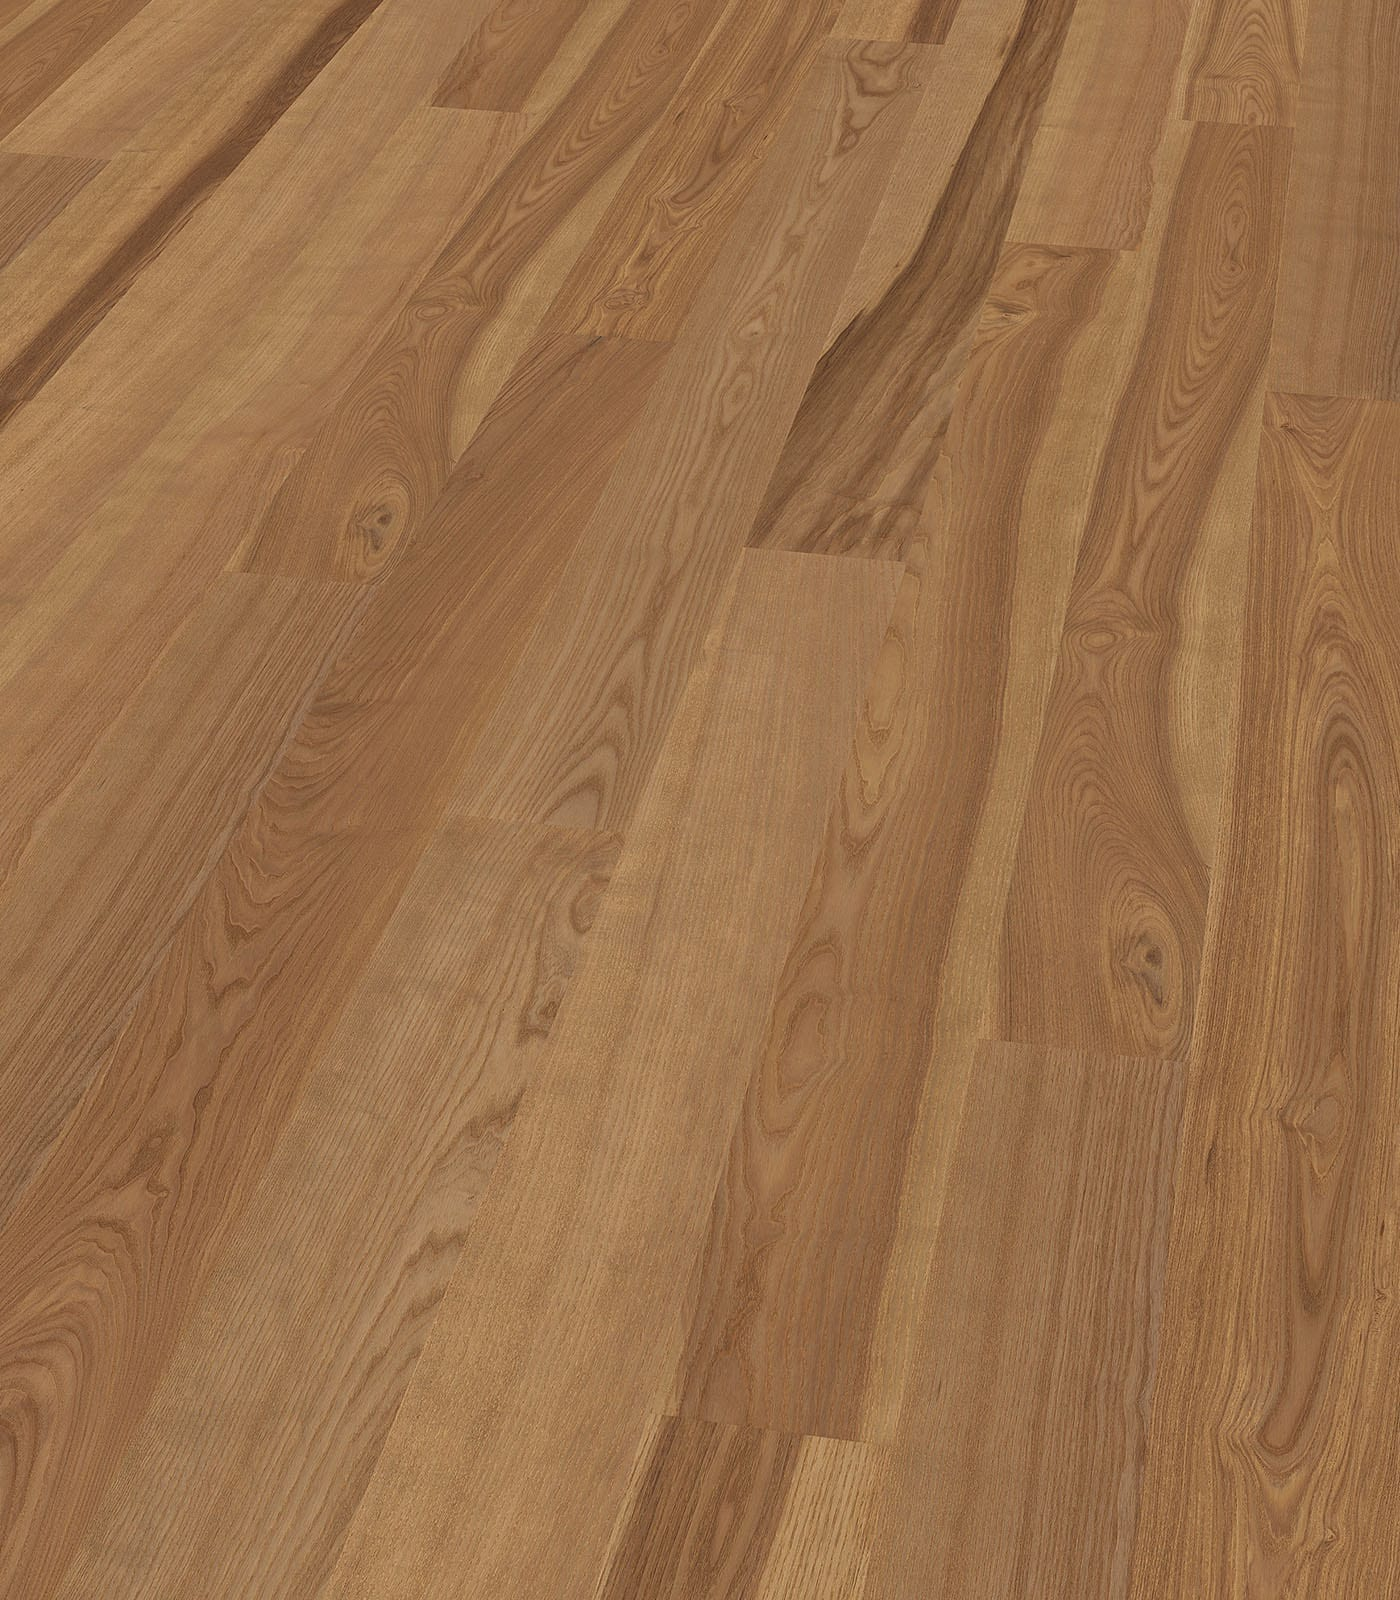 St Petersburg-After Oak Collection-European Ash floors - angle